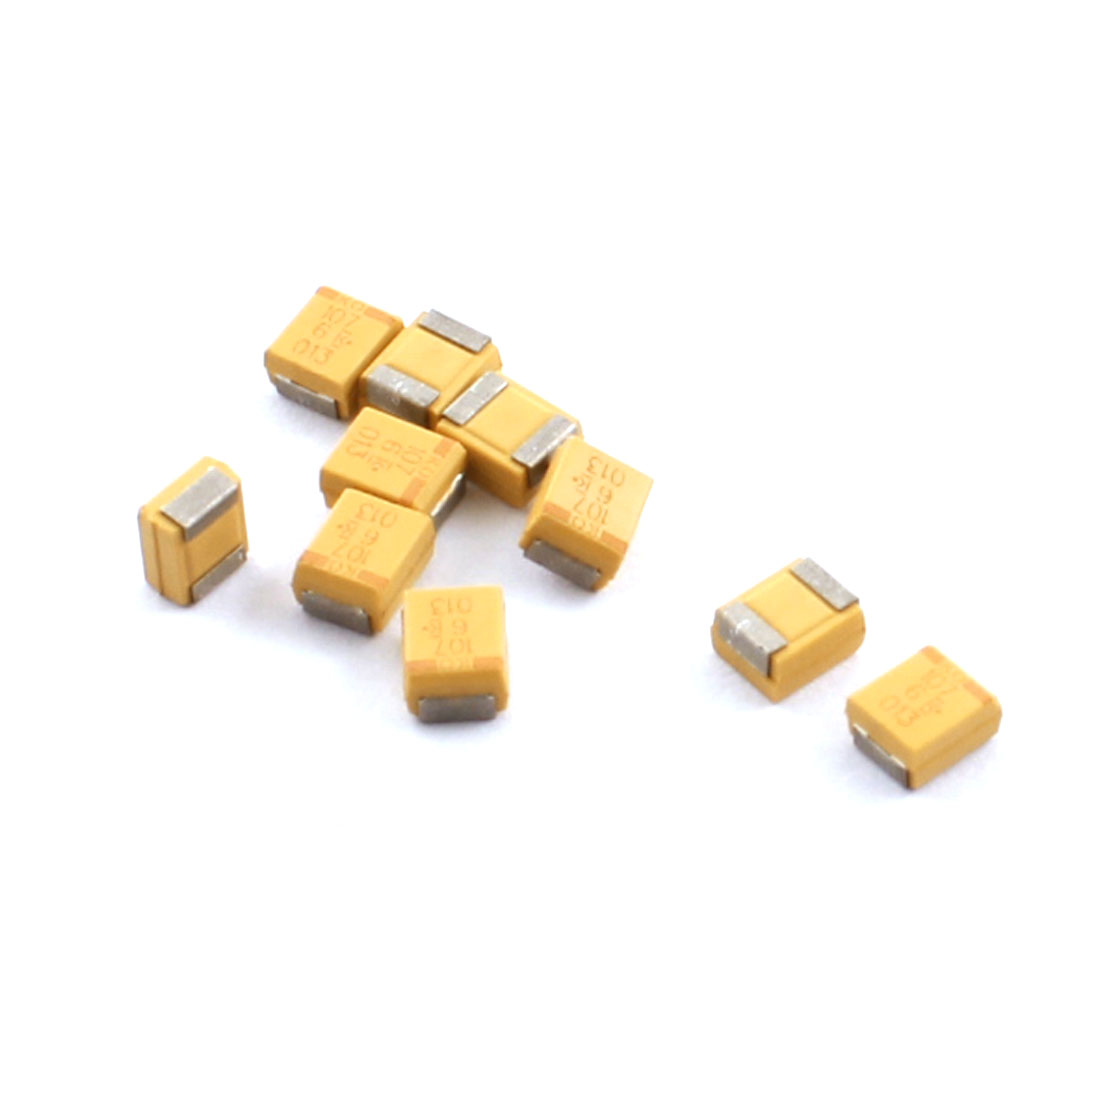 10Pcs 3528-19 B Type 100uF 6.3V Chip Tantalum Capacitors